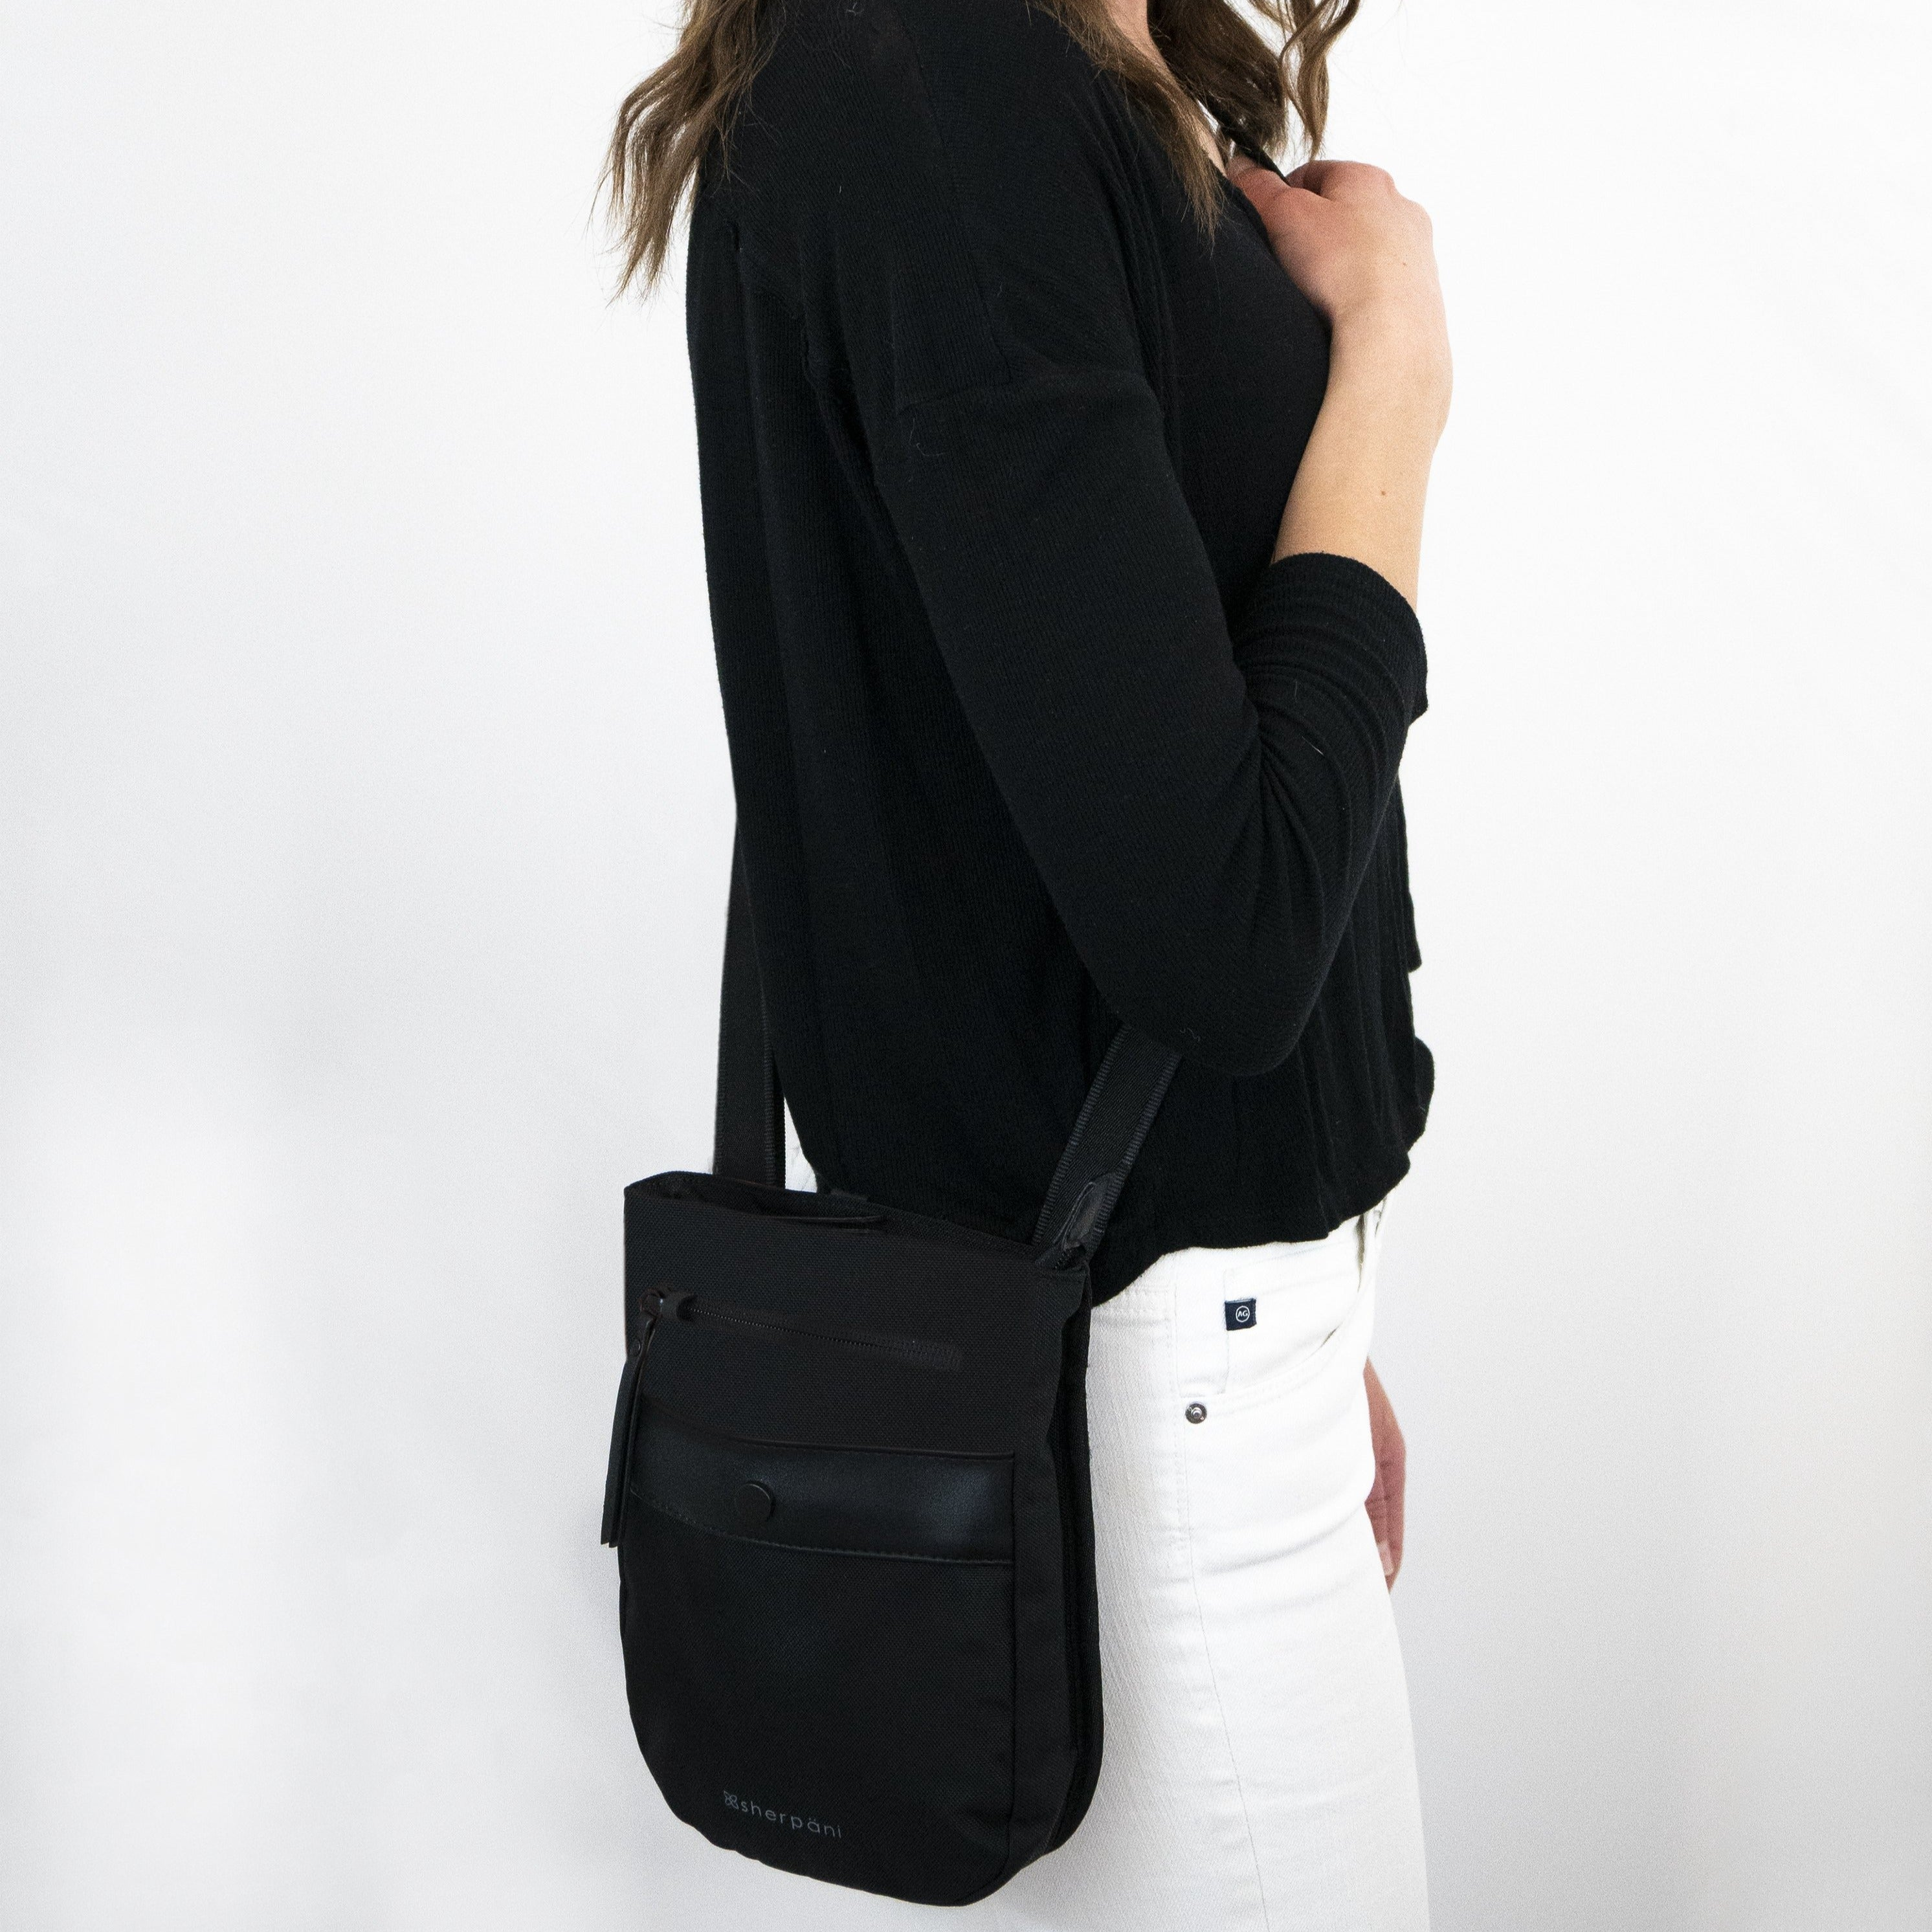 Black Anti-theft Crossbody (worn as crossbody) with anti-theft features